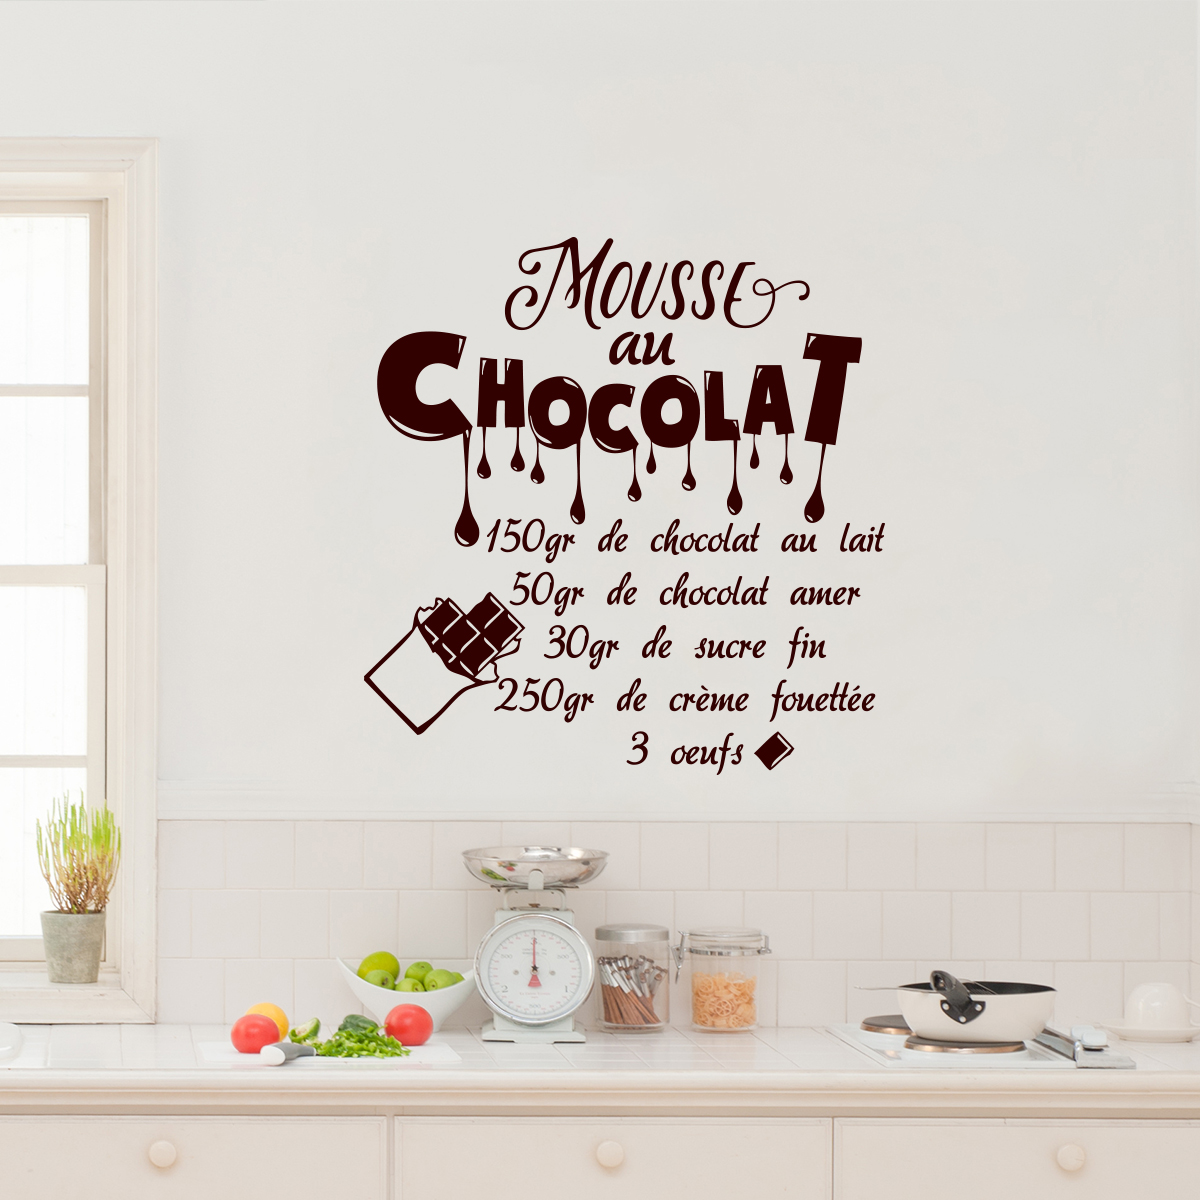 sticker citation recette mouse au chocolat 150 gr stickers cuisine nourriture et fruits. Black Bedroom Furniture Sets. Home Design Ideas